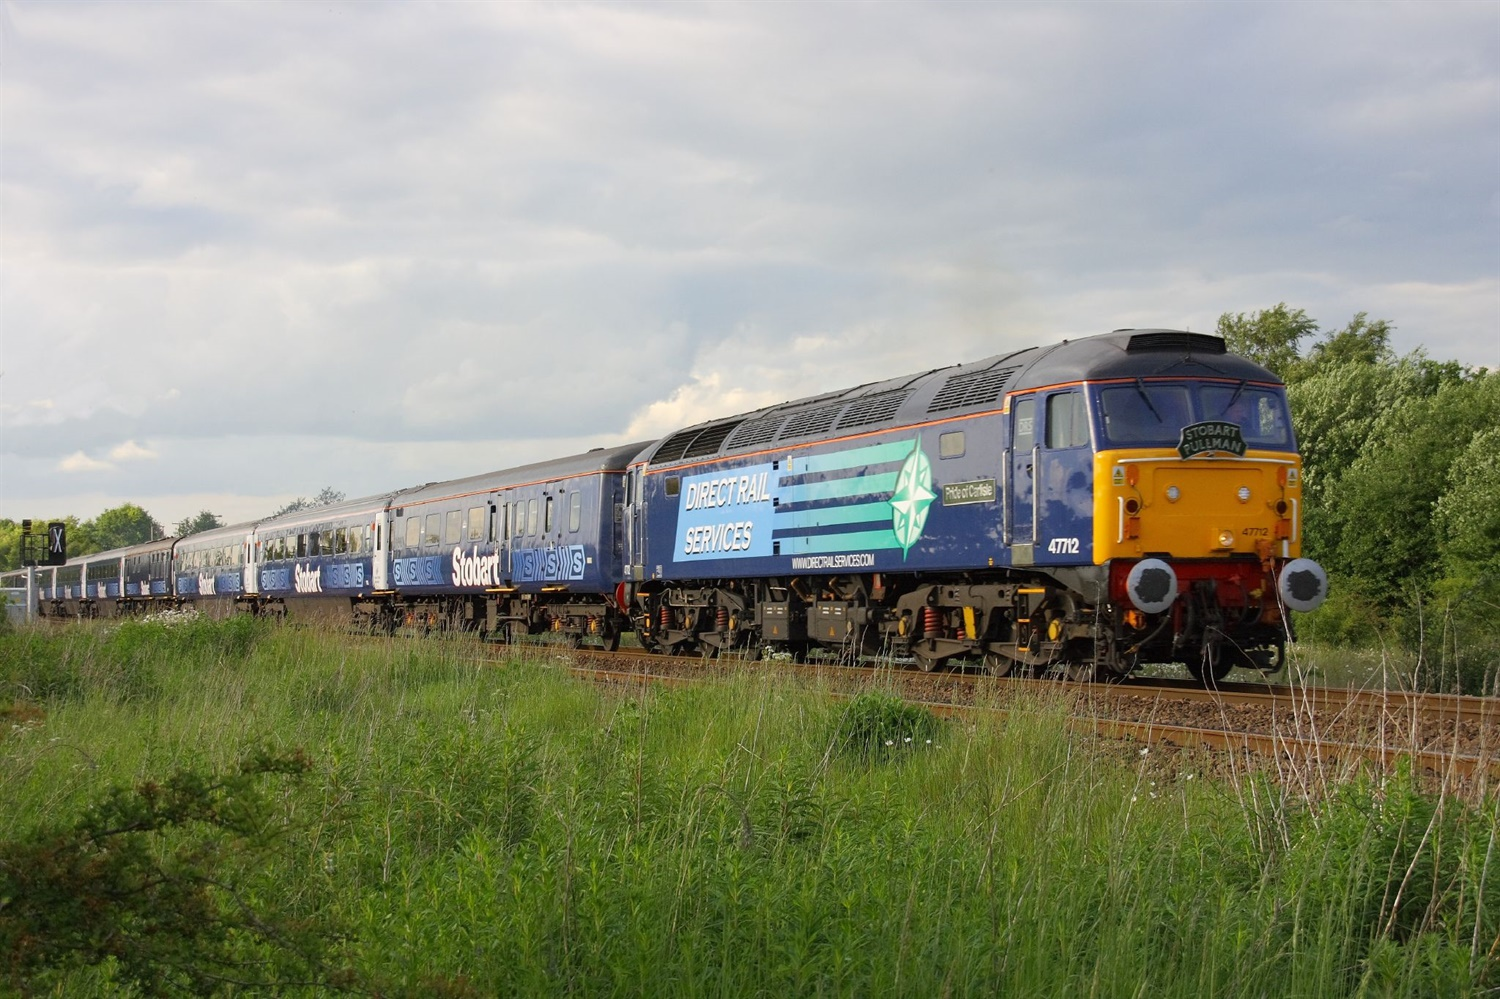 DRS to provide rolling stock for Cumbrian Coast